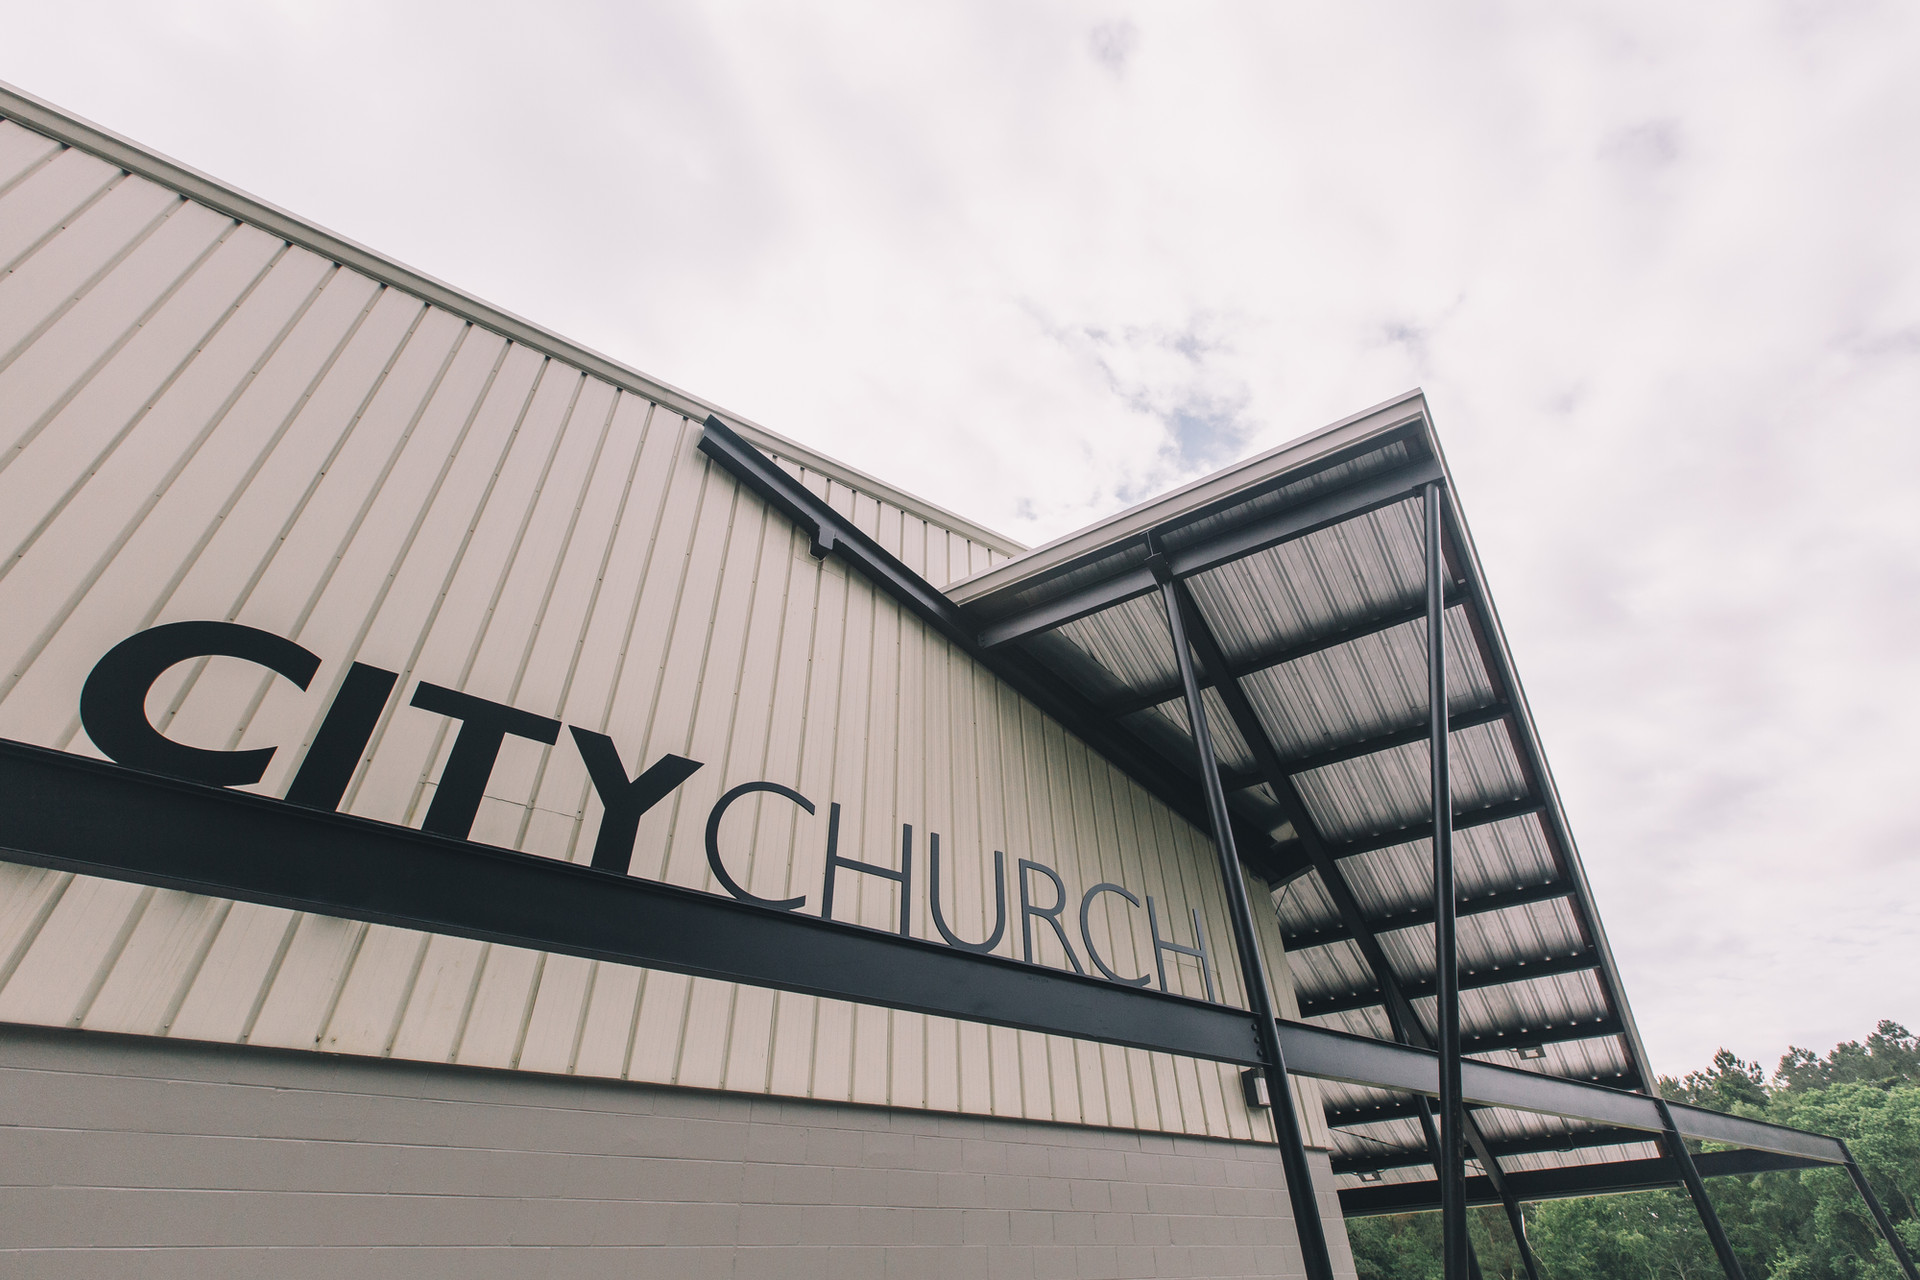 City Church Tallahassee